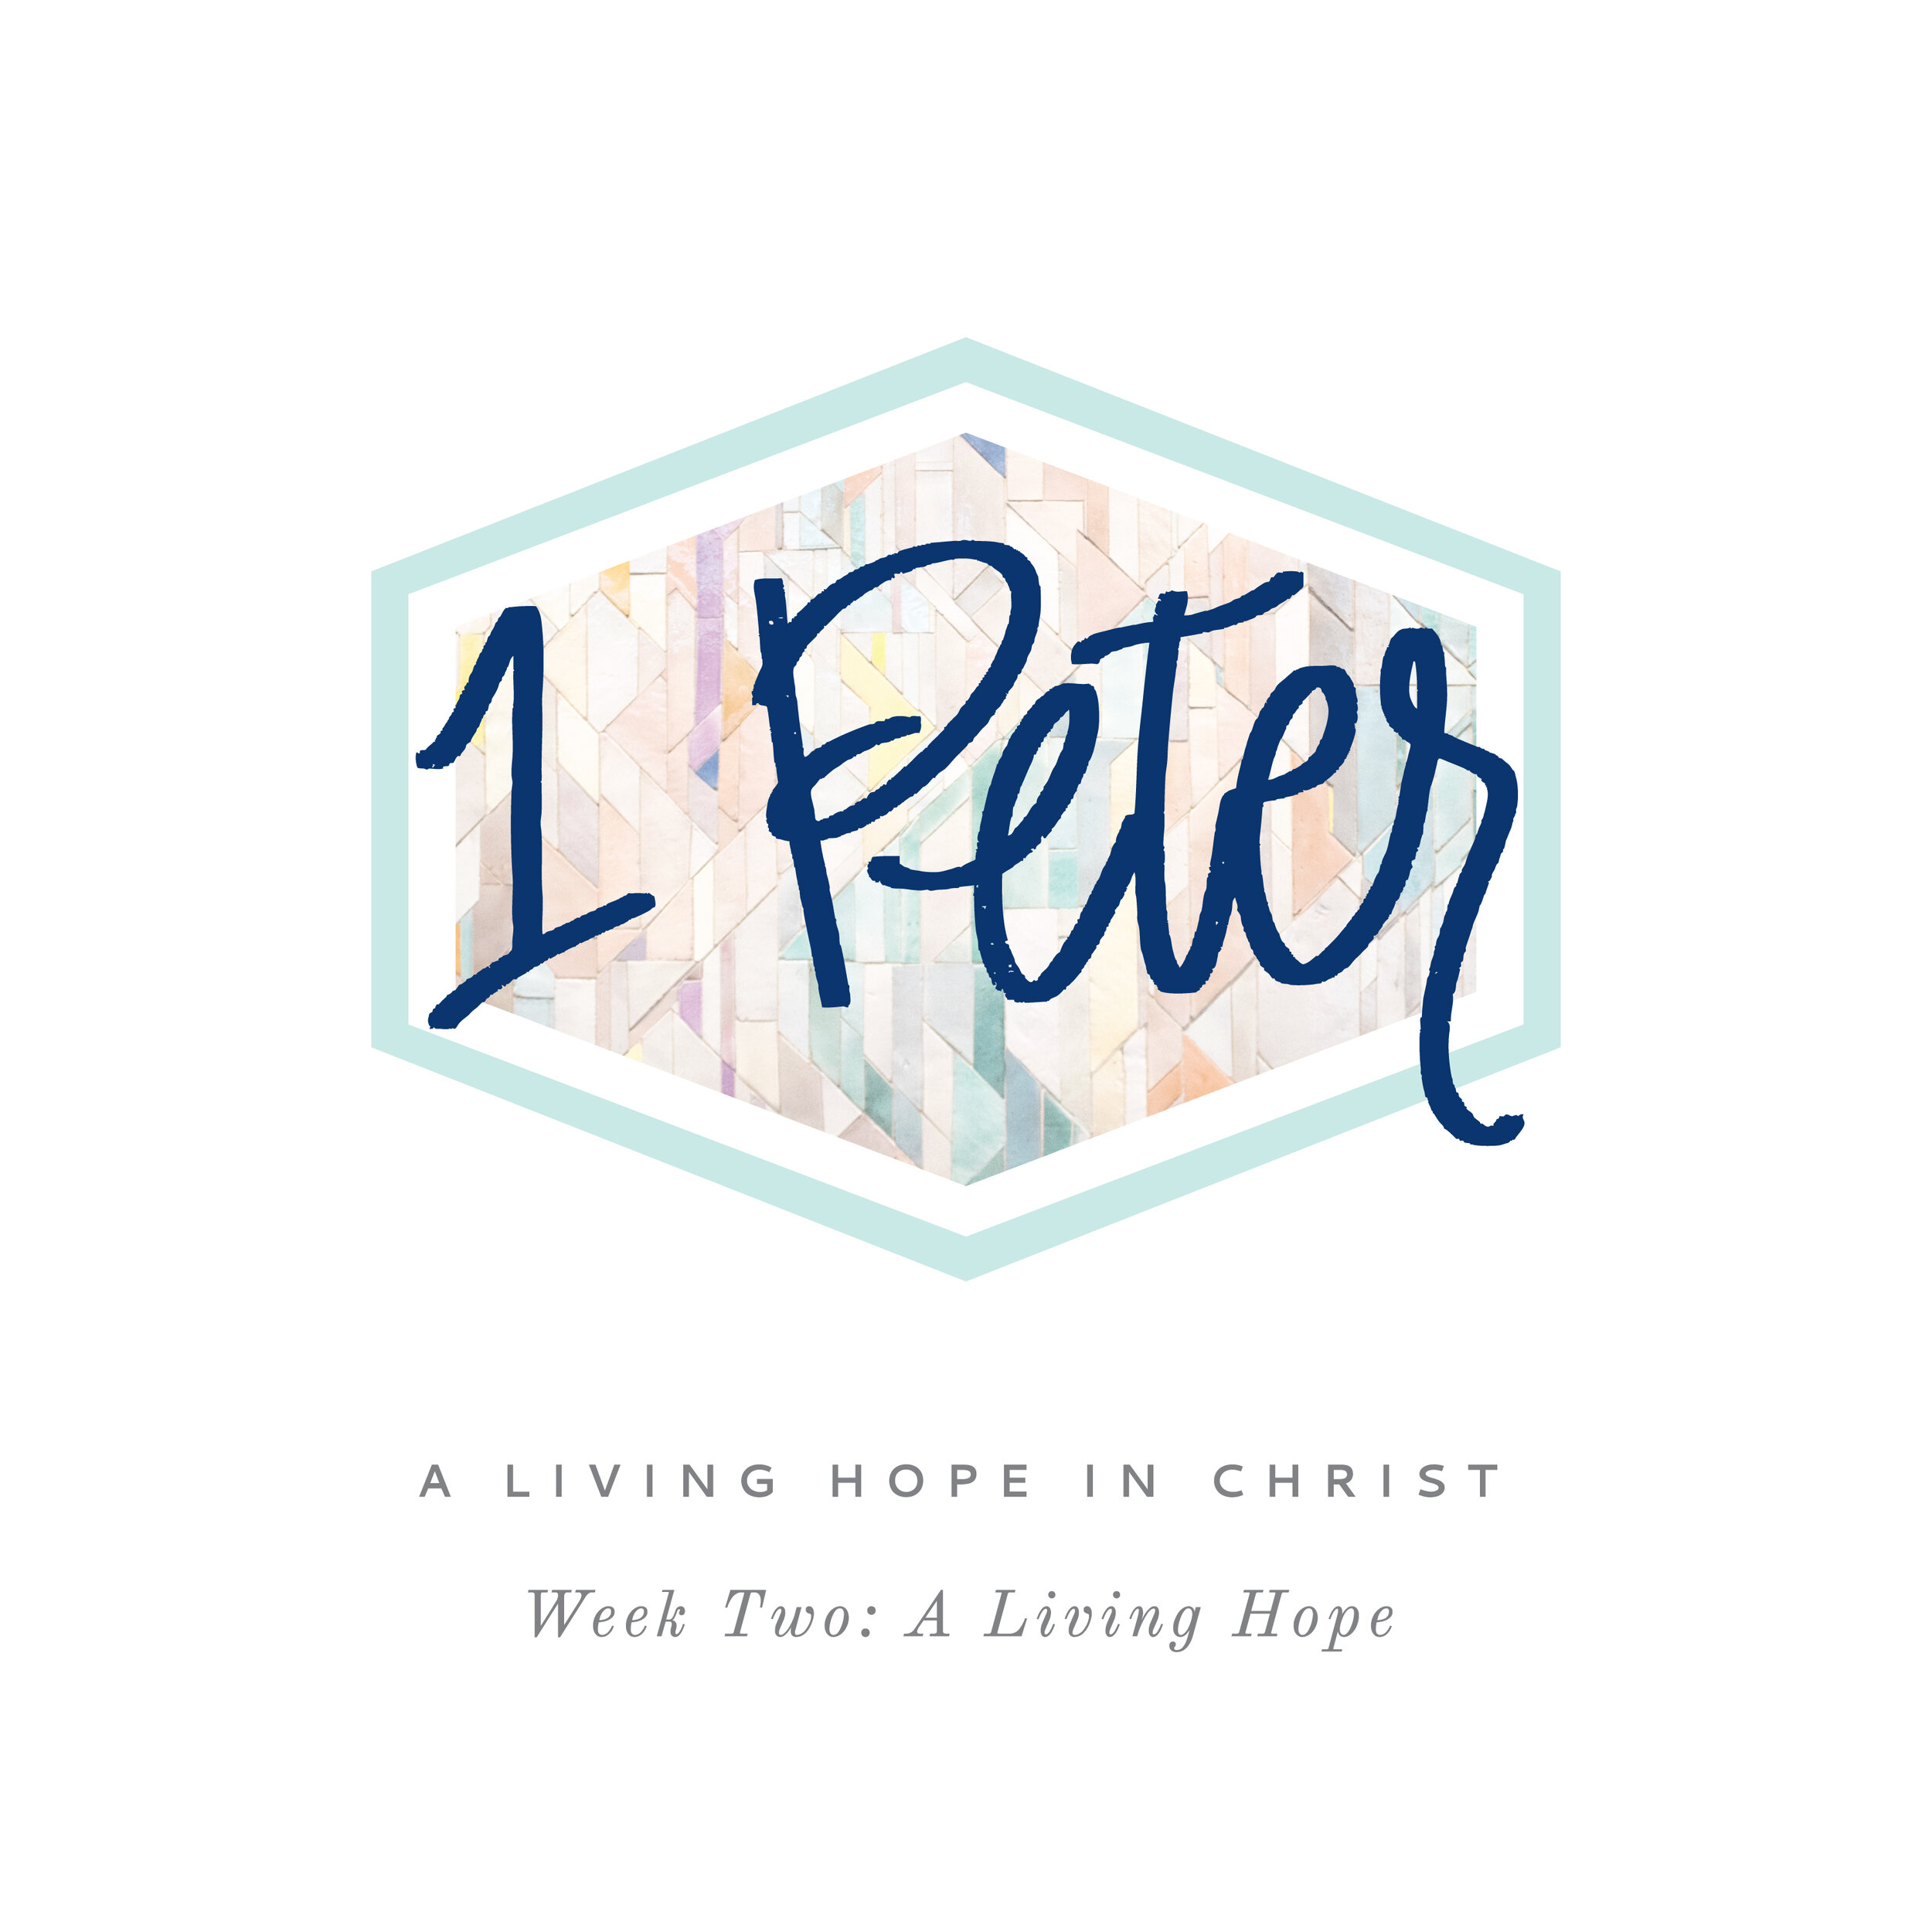 A Living Hope in Christ